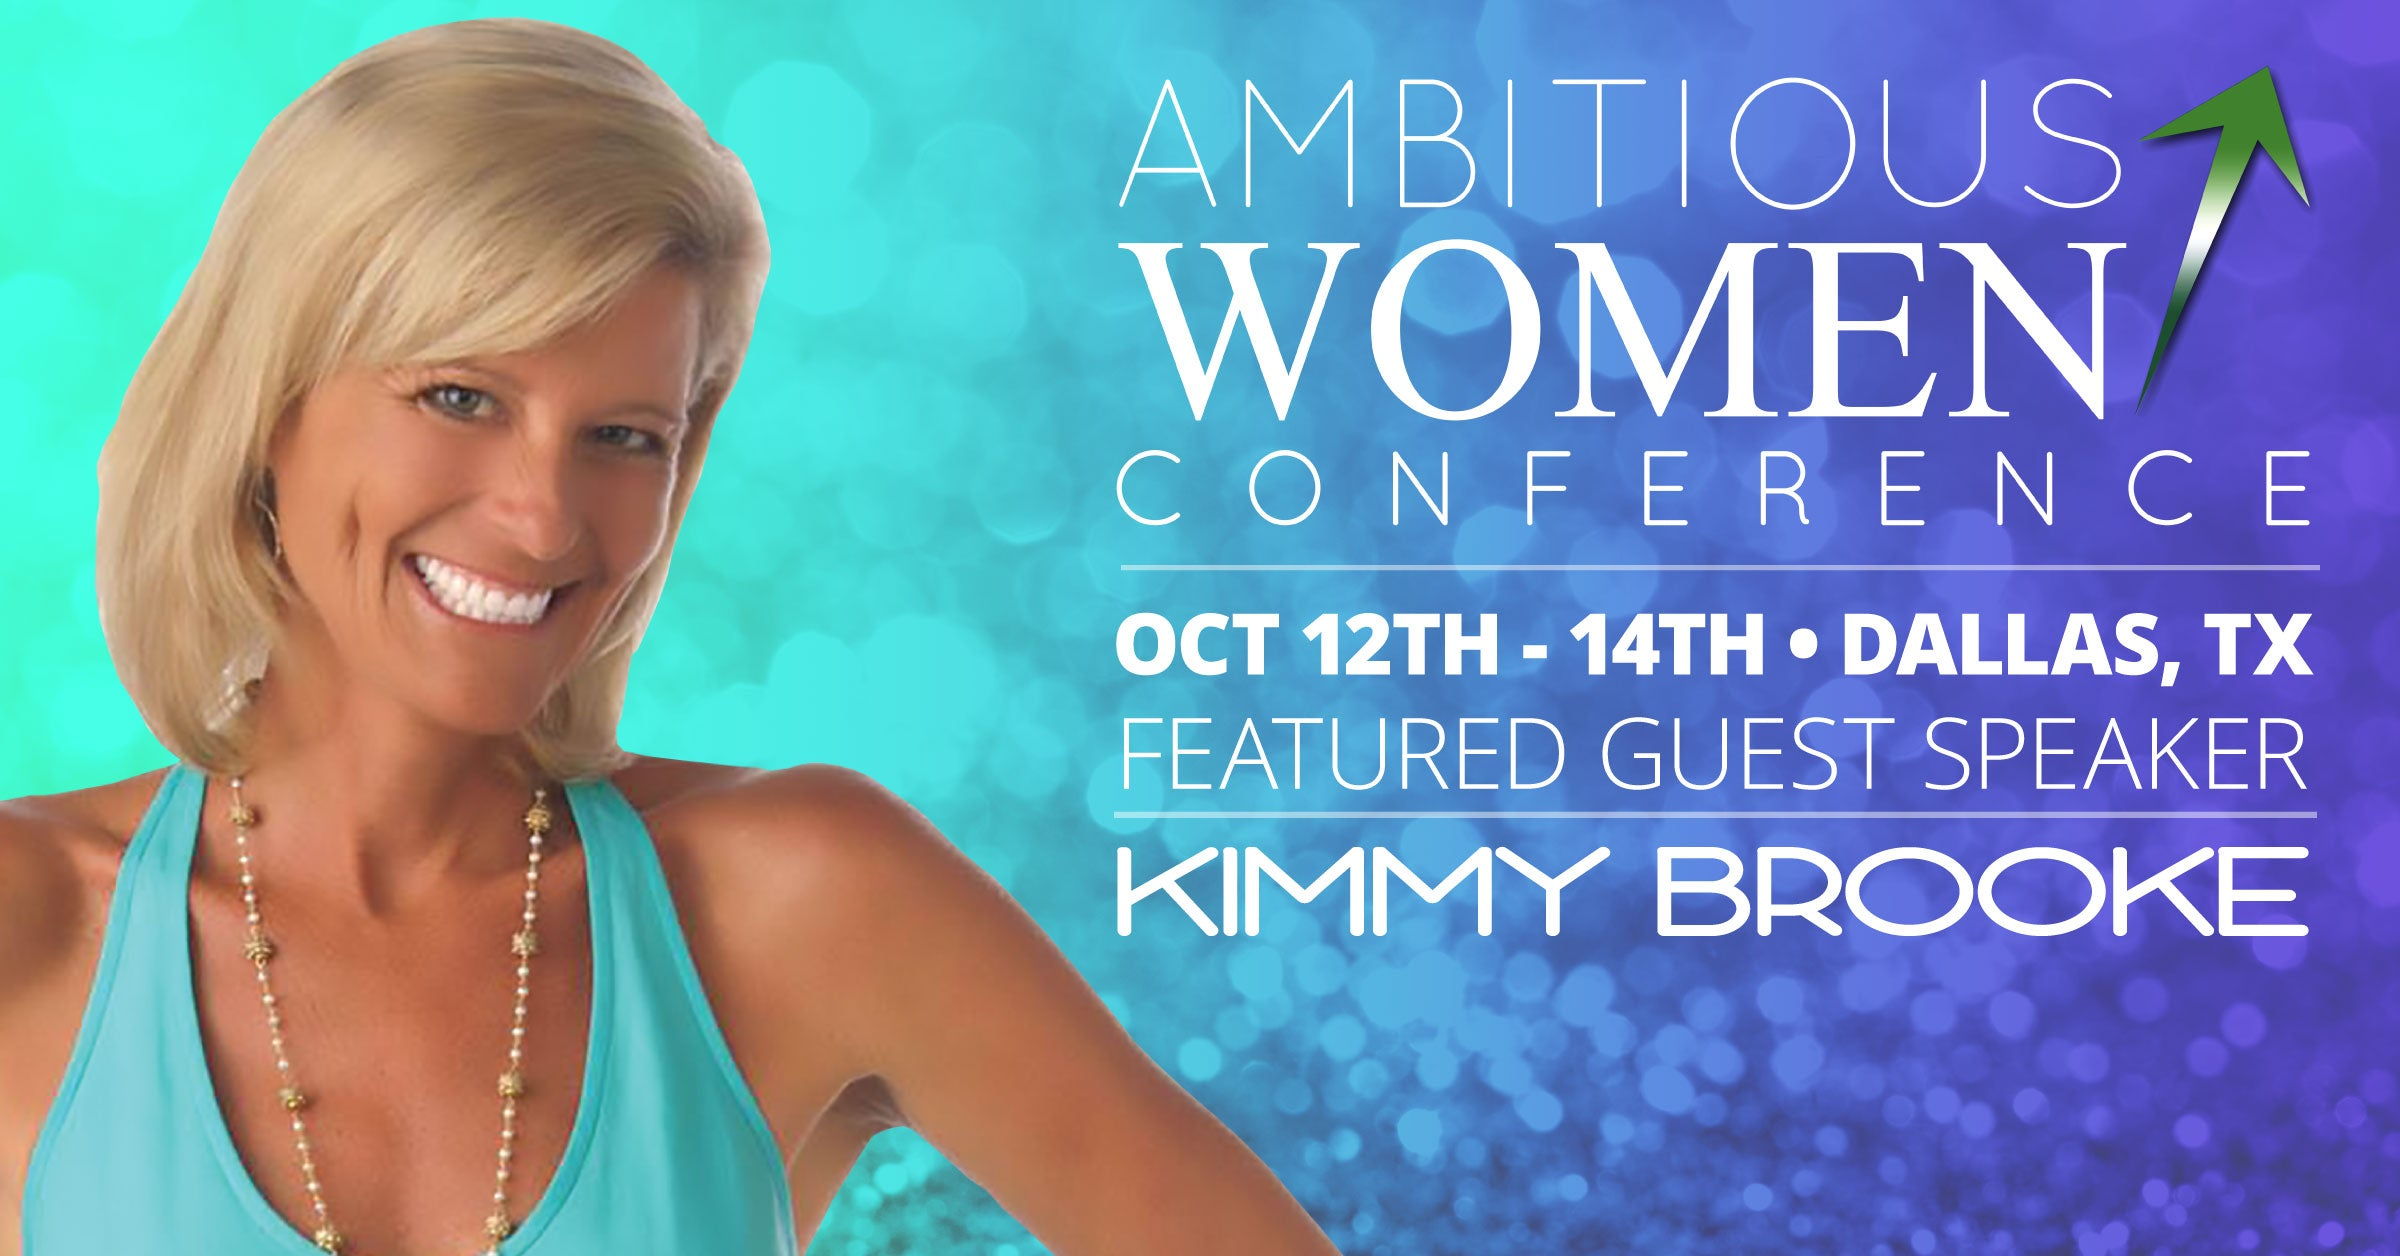 THE ​PREMIER ​CONFERENCE ​FOR ​WOMEN ​IN ​NETWORK ​MARKETING ​AND ​DIRECT ​SALES Kimmy Brooke